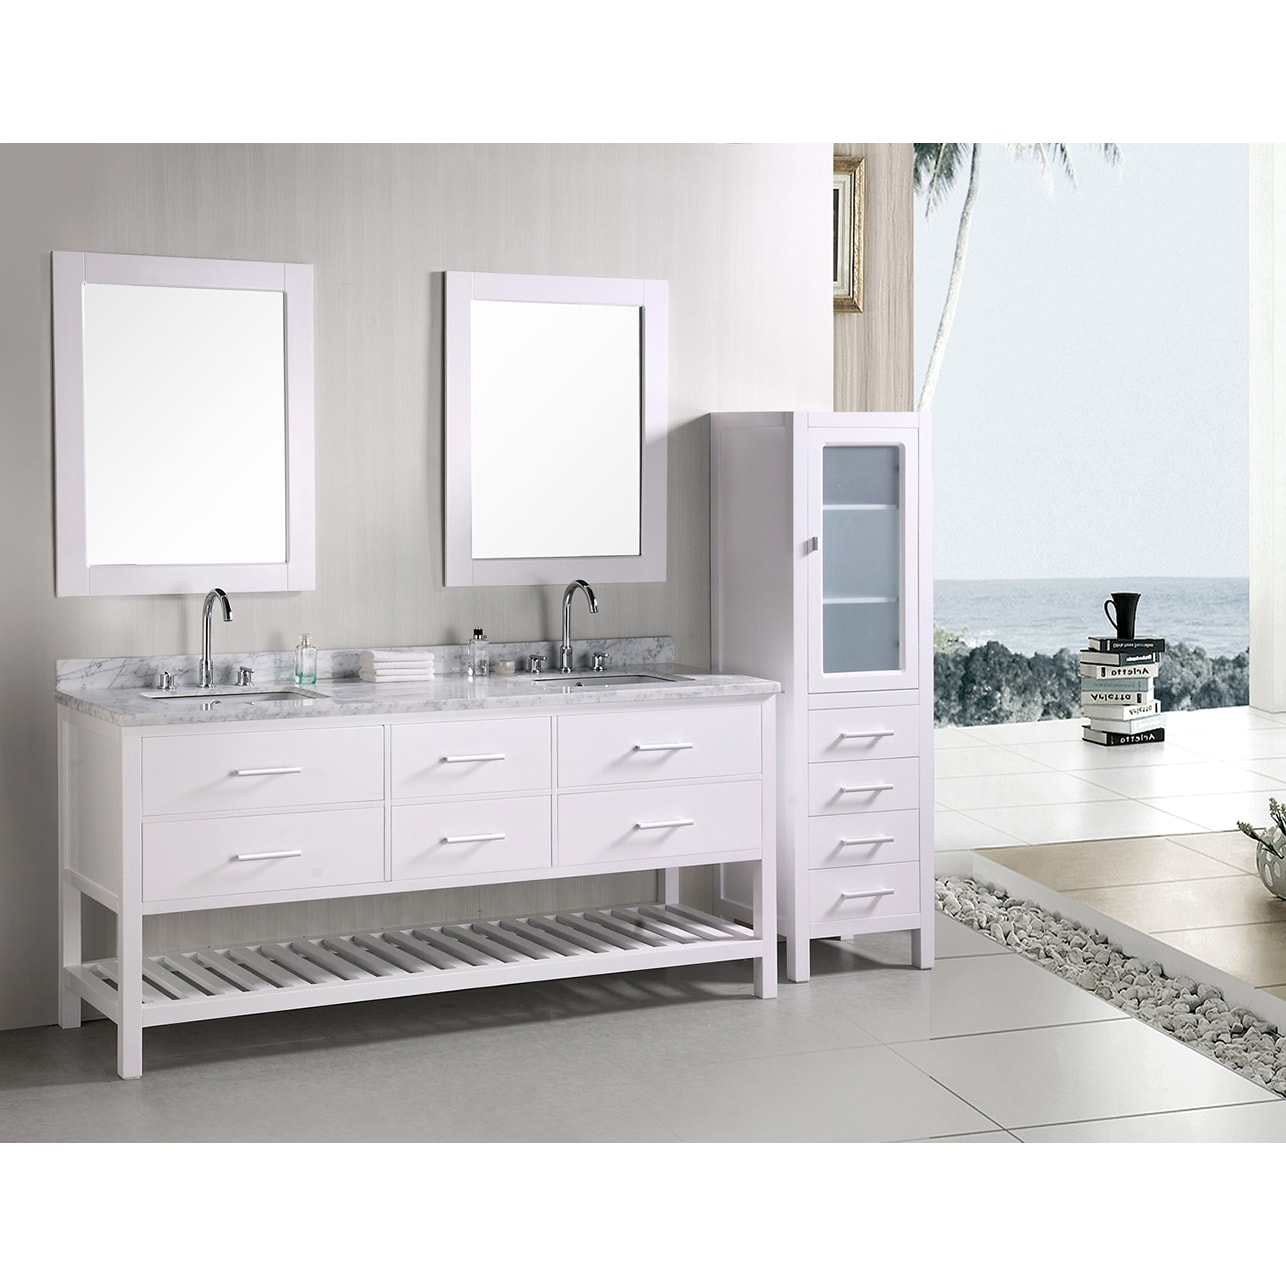 Shop Design Element London 72-inch Double Sink Bathroom Vanity Set ...